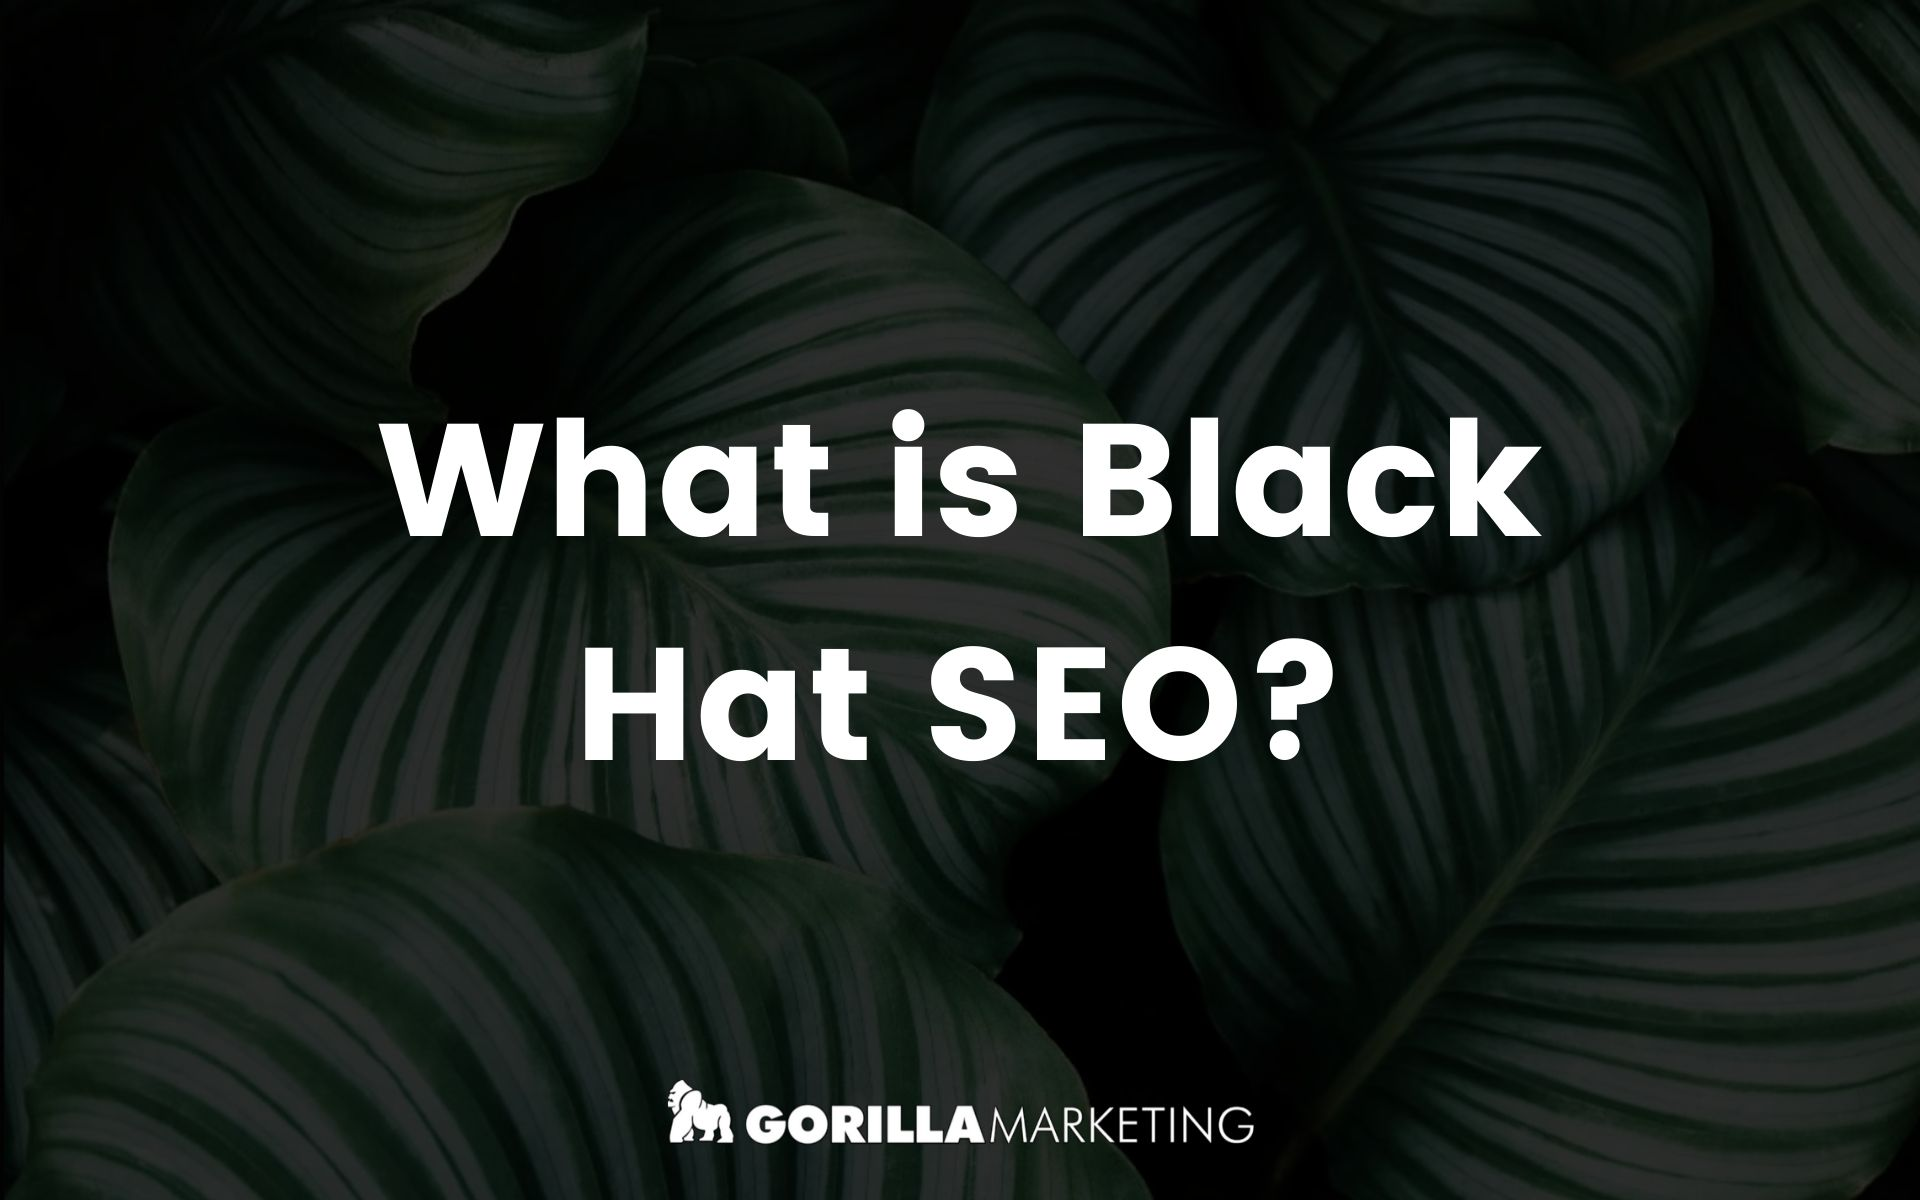 What is Black Hat Search Engine Optimisation